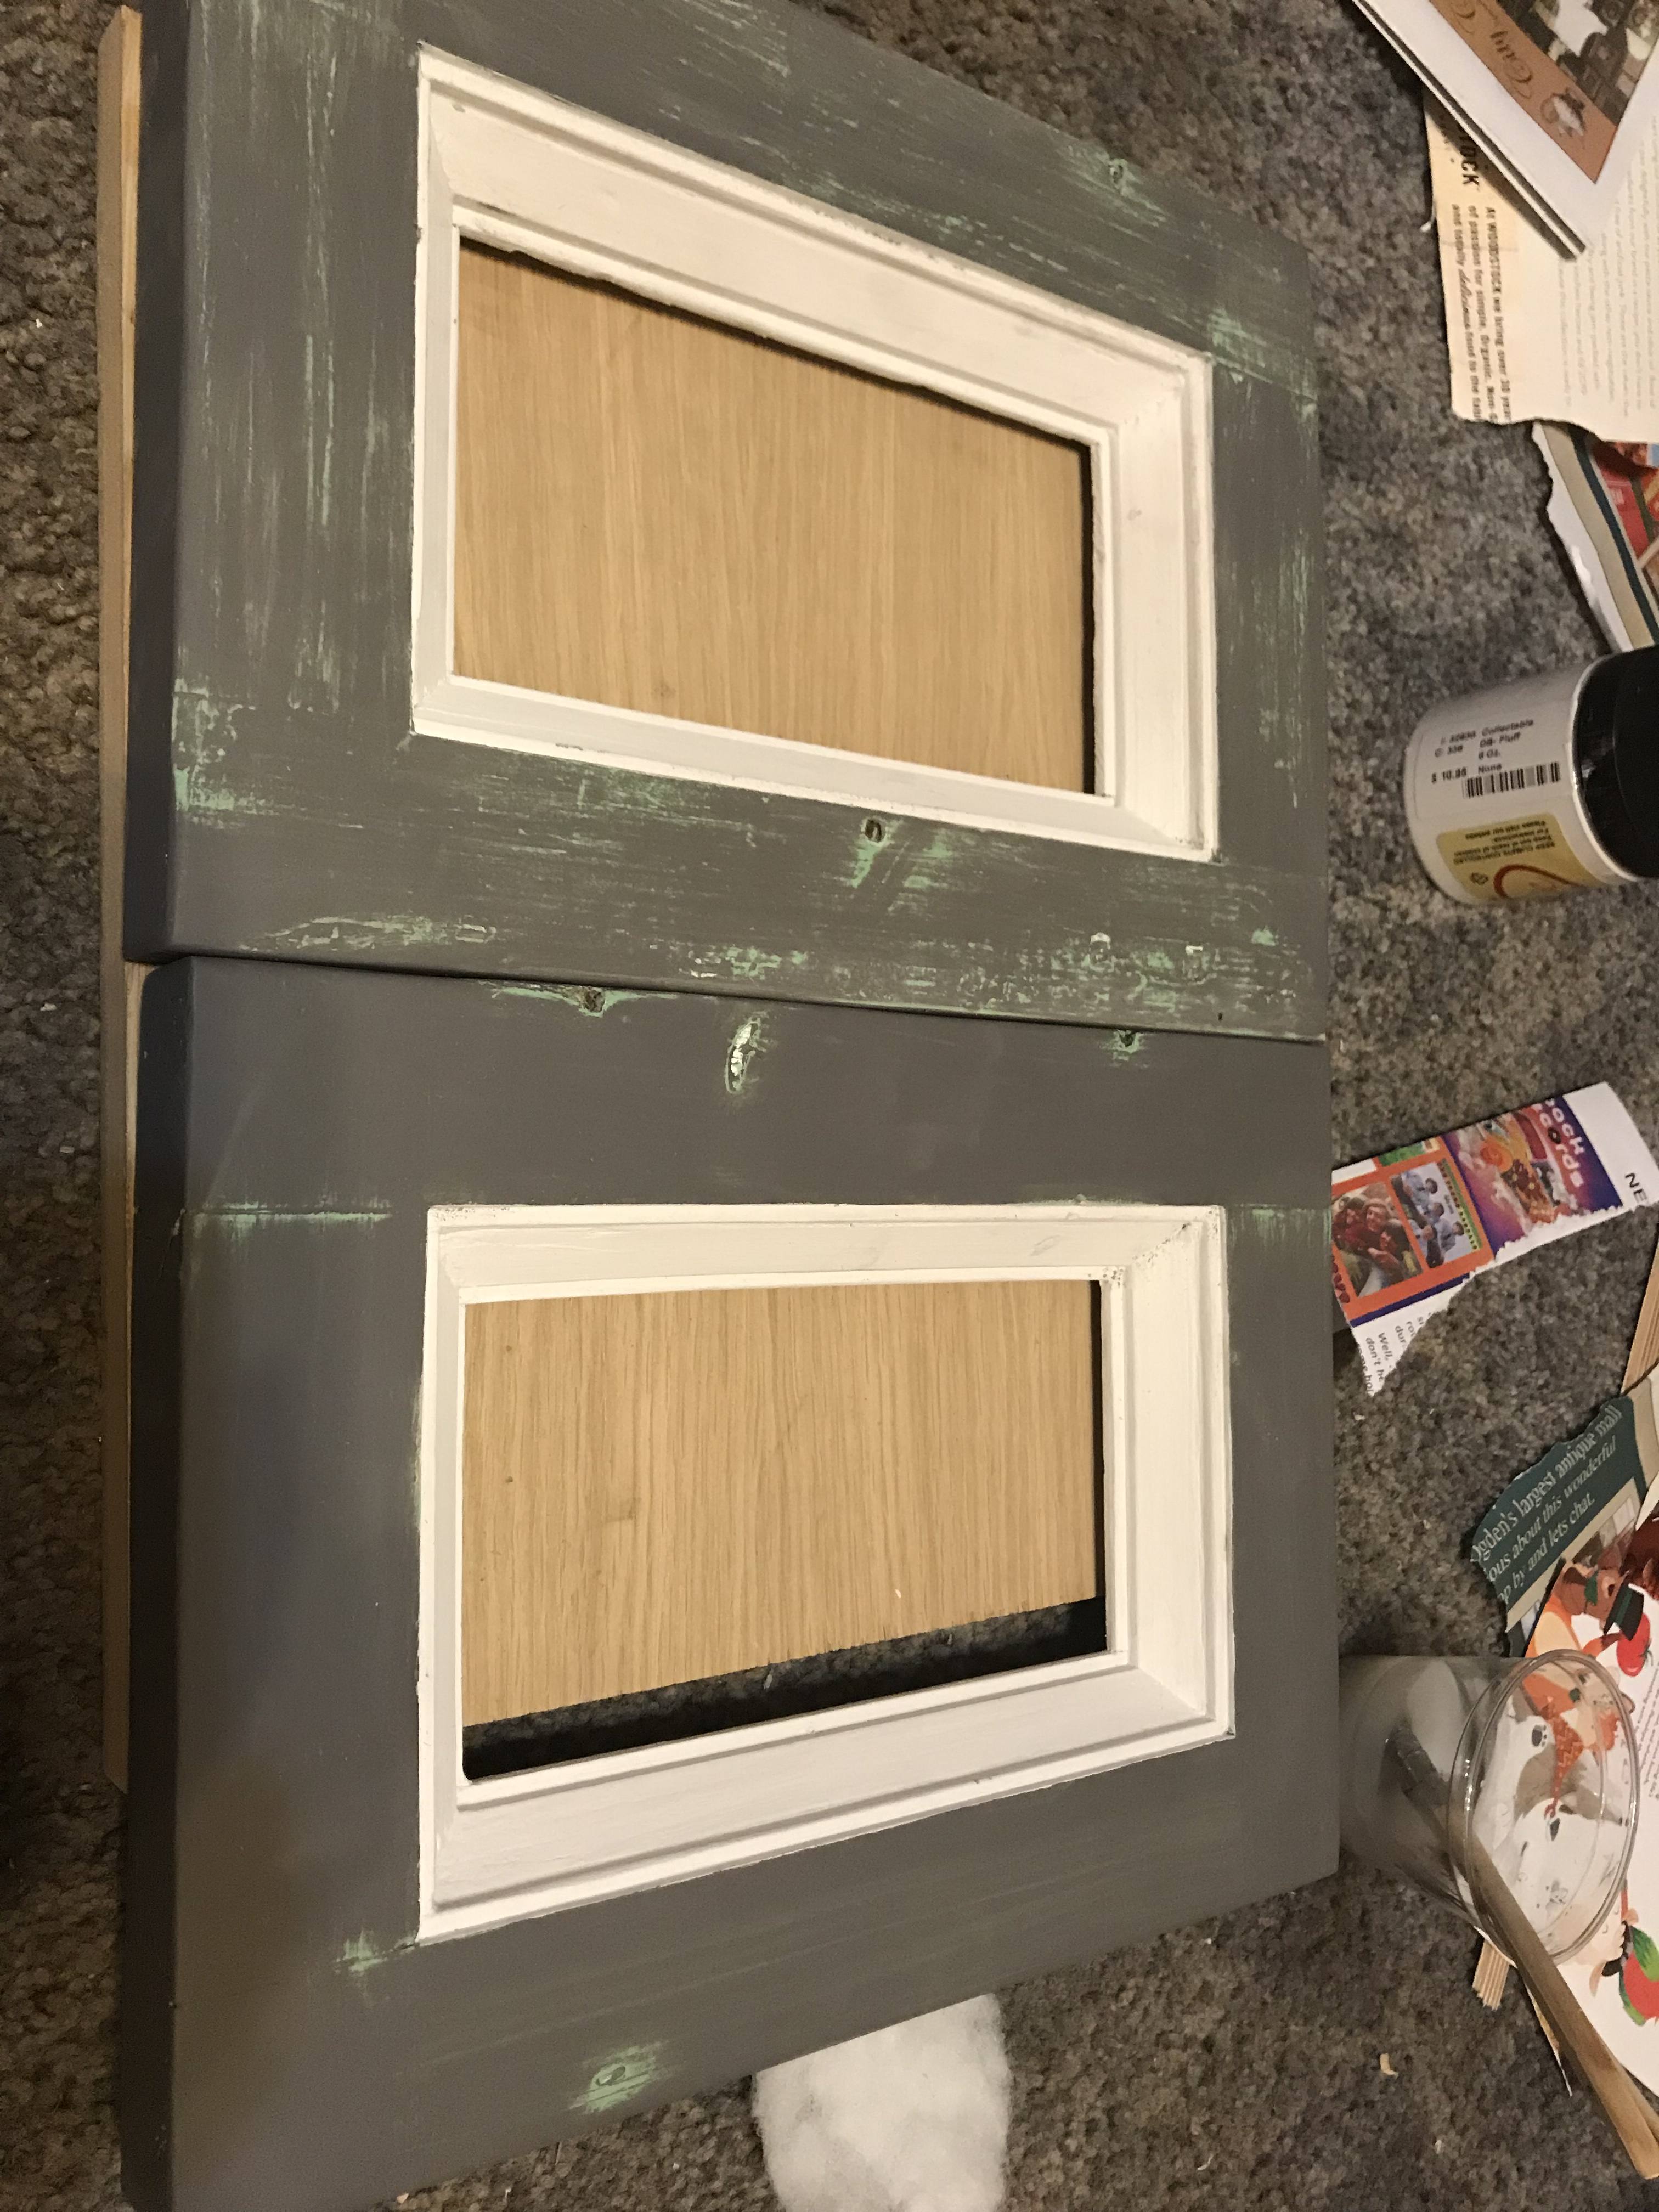 Two small dresser doors with white molding and gray panels with a mint green colored distressed through the gray paint